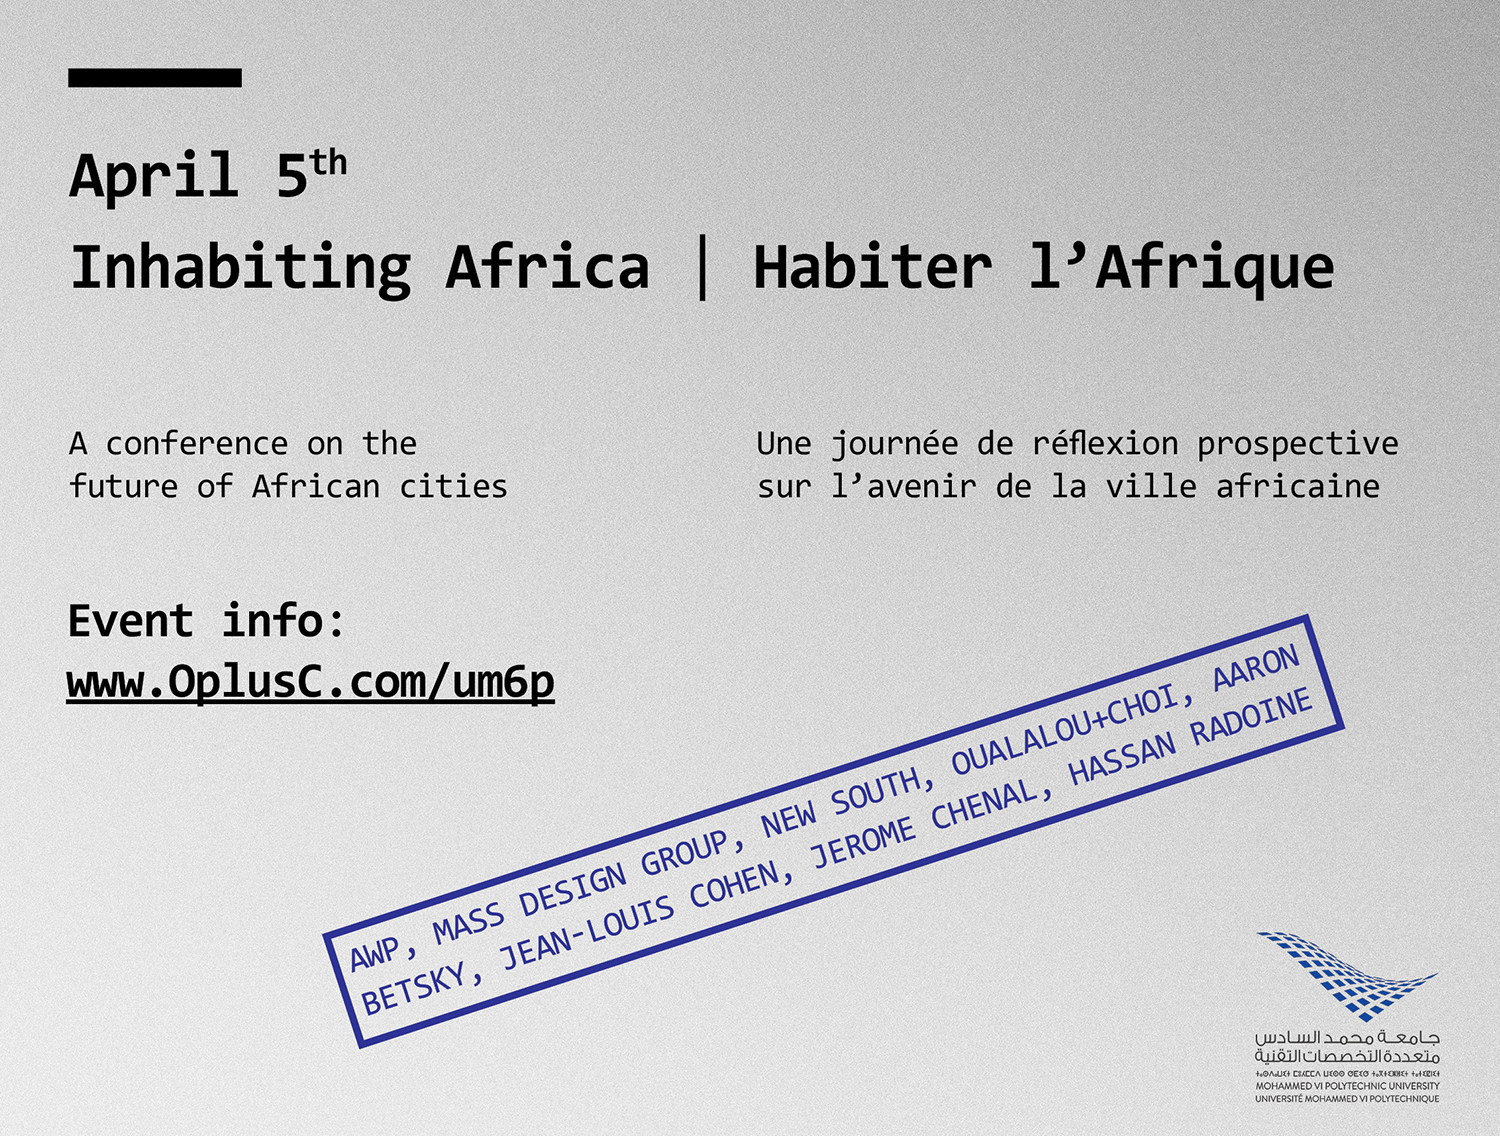 evnt - APR. 5, 2018 | Inhabiting Africa: a conference on the future of African cities at the UM6P, Ben Guerir in Morocco